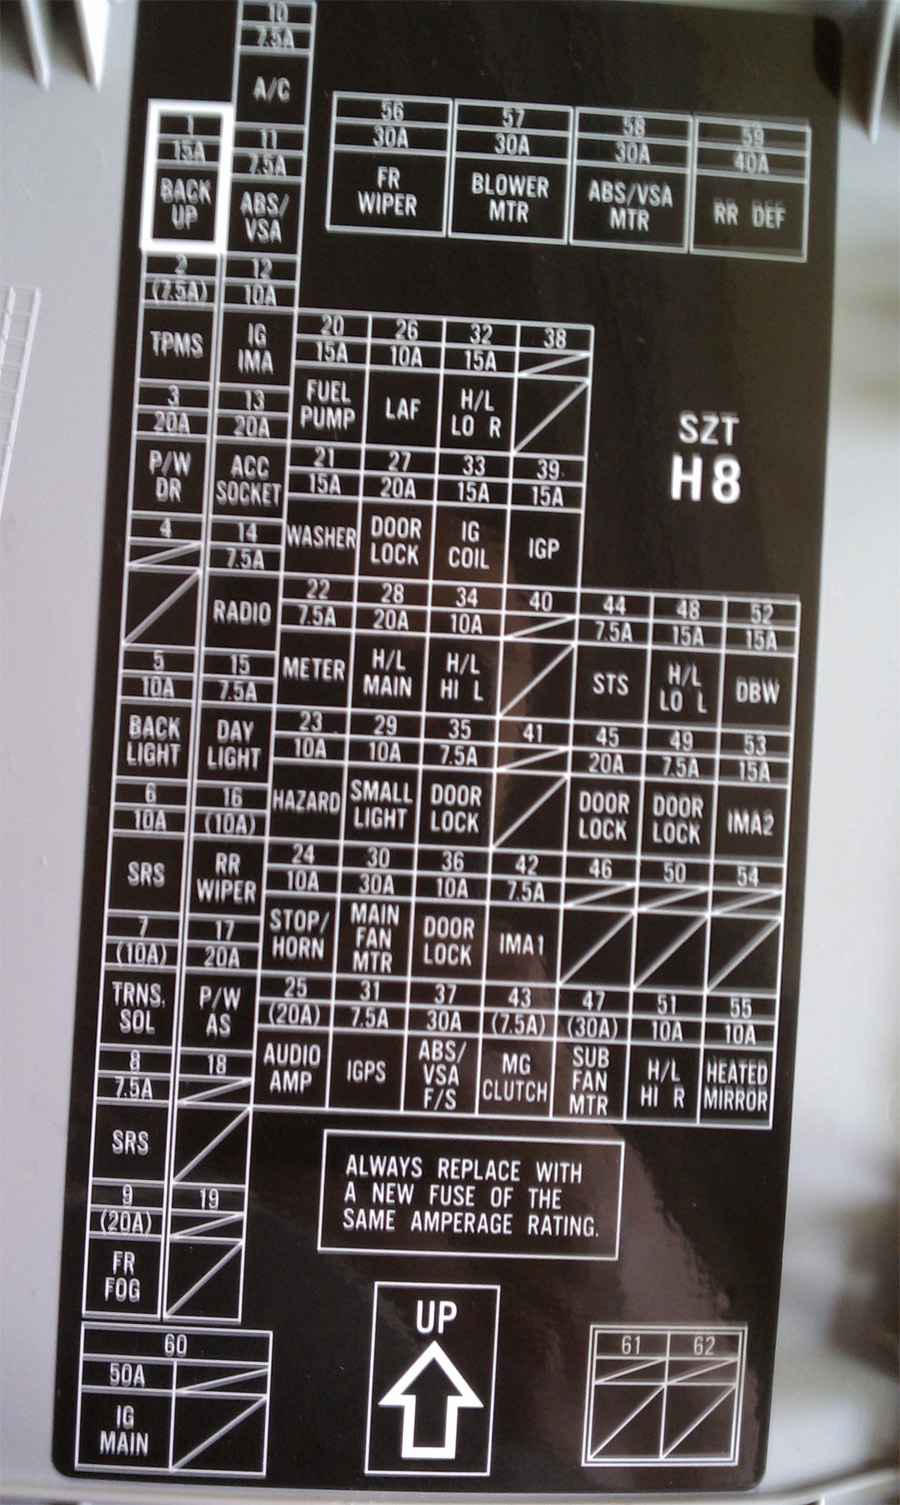 fuse box diagram for 2001 nissan altima wh 8073  nissan altima fuse box location get free image about  wh 8073  nissan altima fuse box